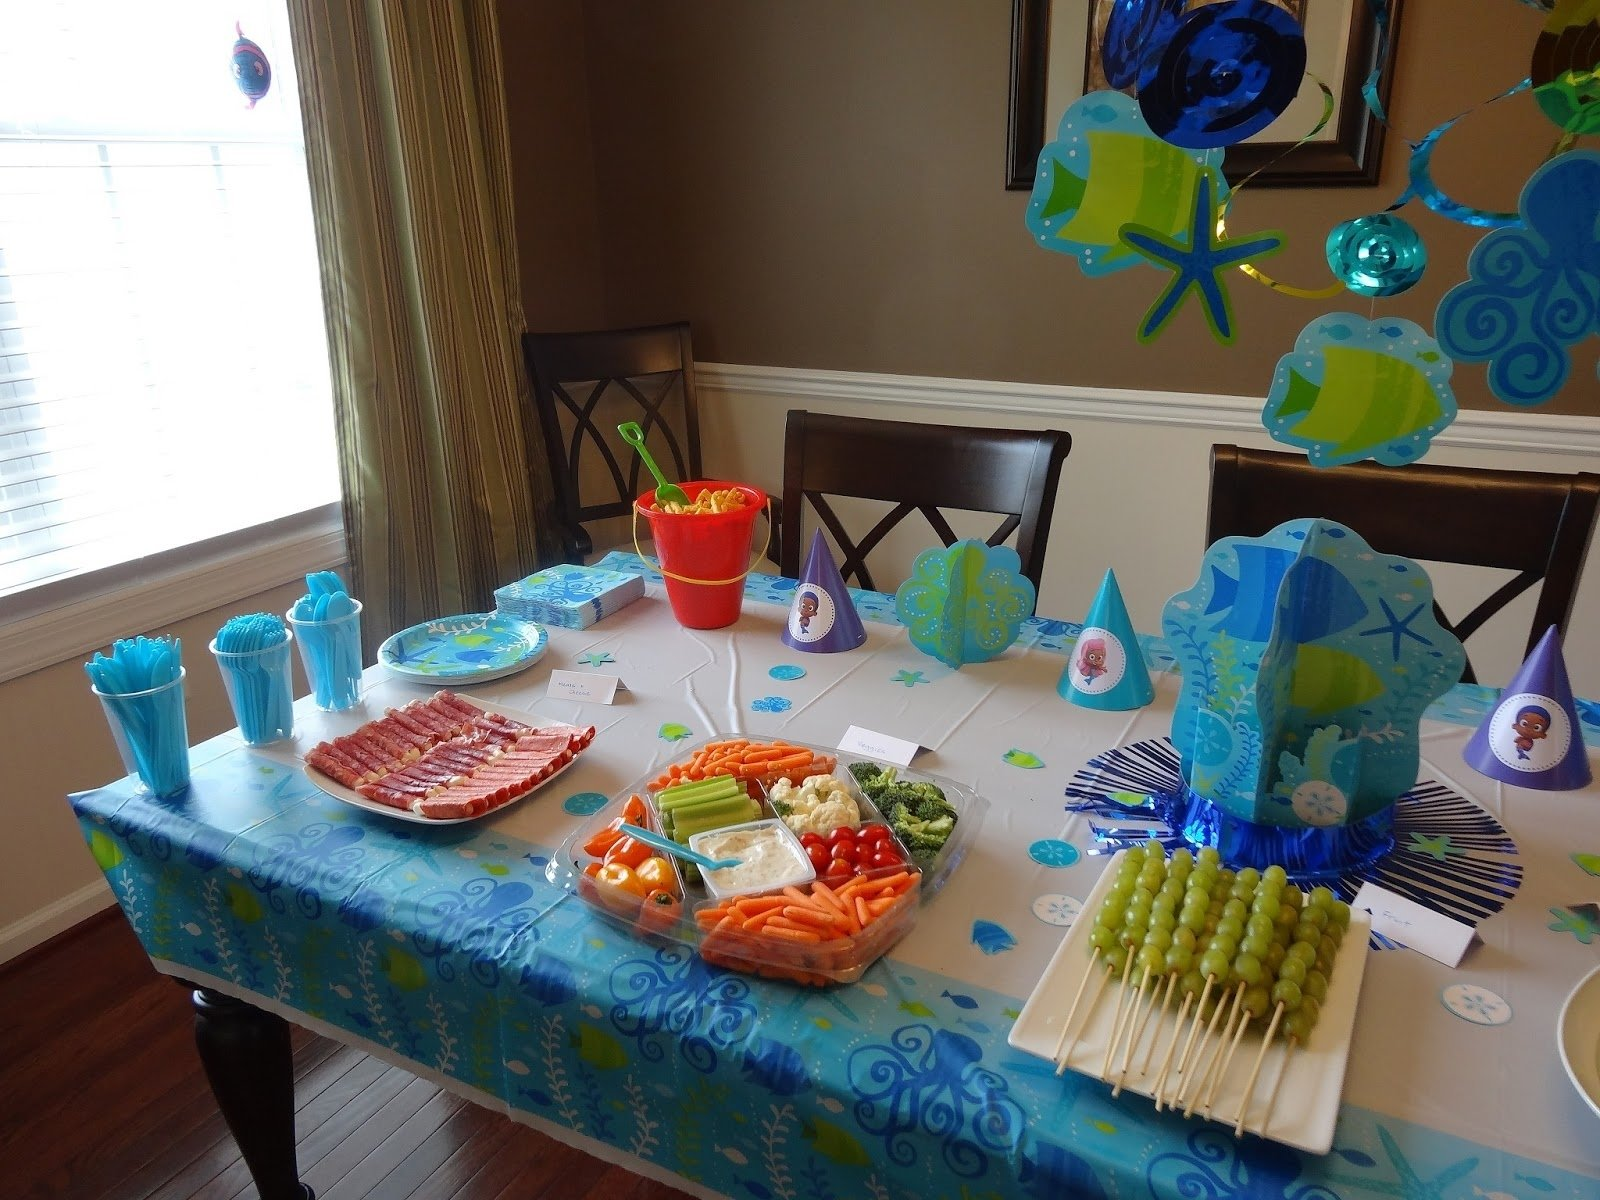 10 Trendy Bubble Guppies Birthday Party Food Ideas ideas bubble guppies birthday party bubble guppies themed